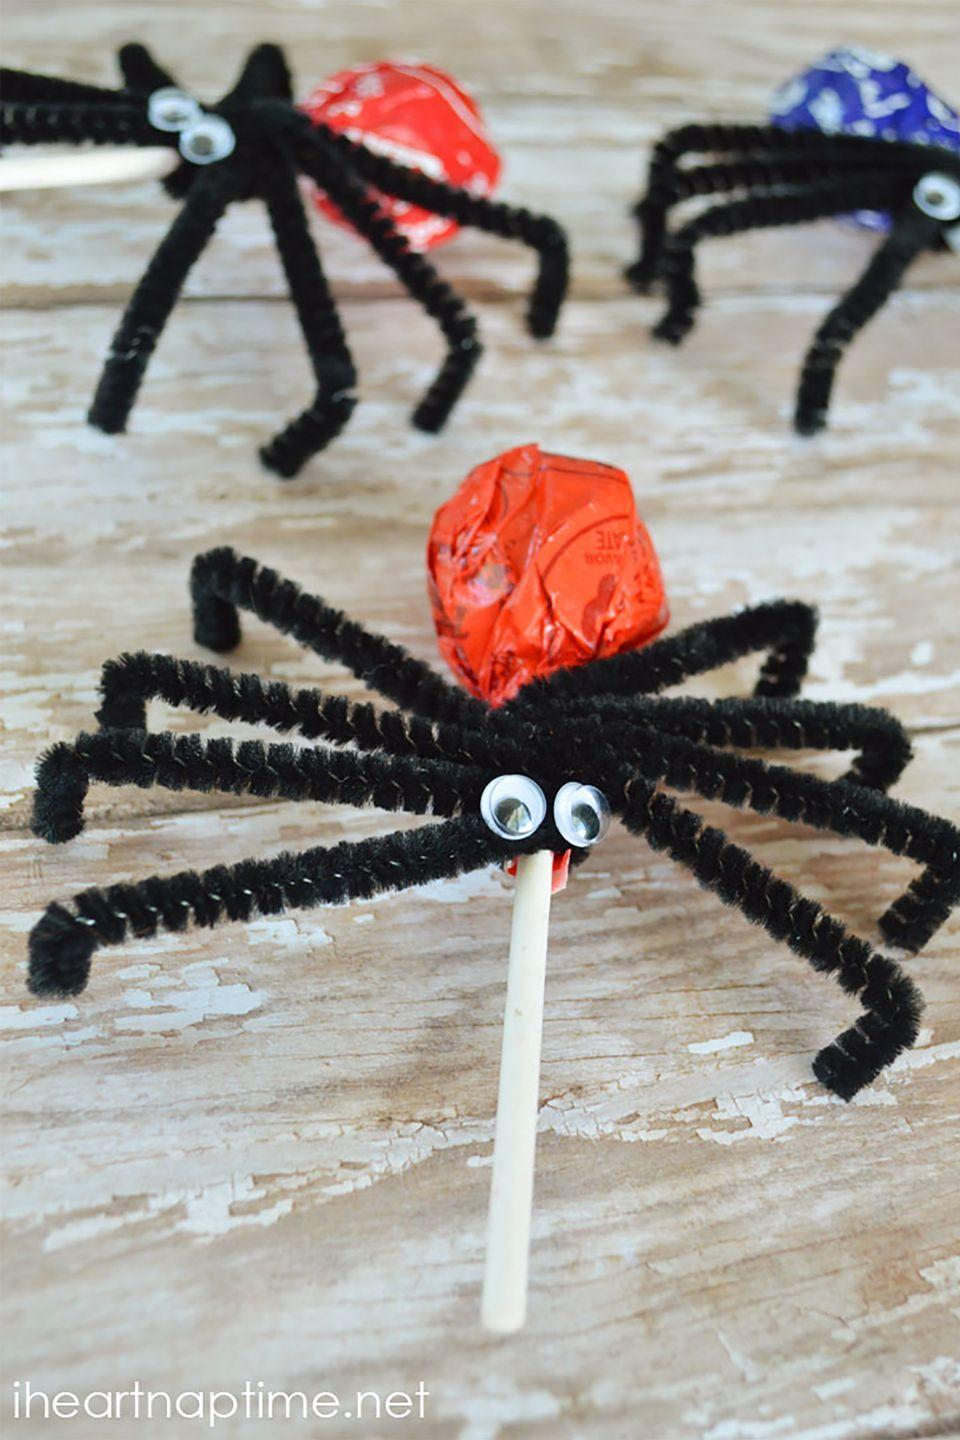 """<p>Lollipops get a scary twist dressed as creepy crawlers.</p><p><strong>Get the tutorial at <a href=""""https://www.iheartnaptime.net/spider-suckers/"""" rel=""""nofollow noopener"""" target=""""_blank"""" data-ylk=""""slk:I Heart Nap Time"""" class=""""link rapid-noclick-resp"""">I Heart Nap Time</a>. </strong> </p>"""